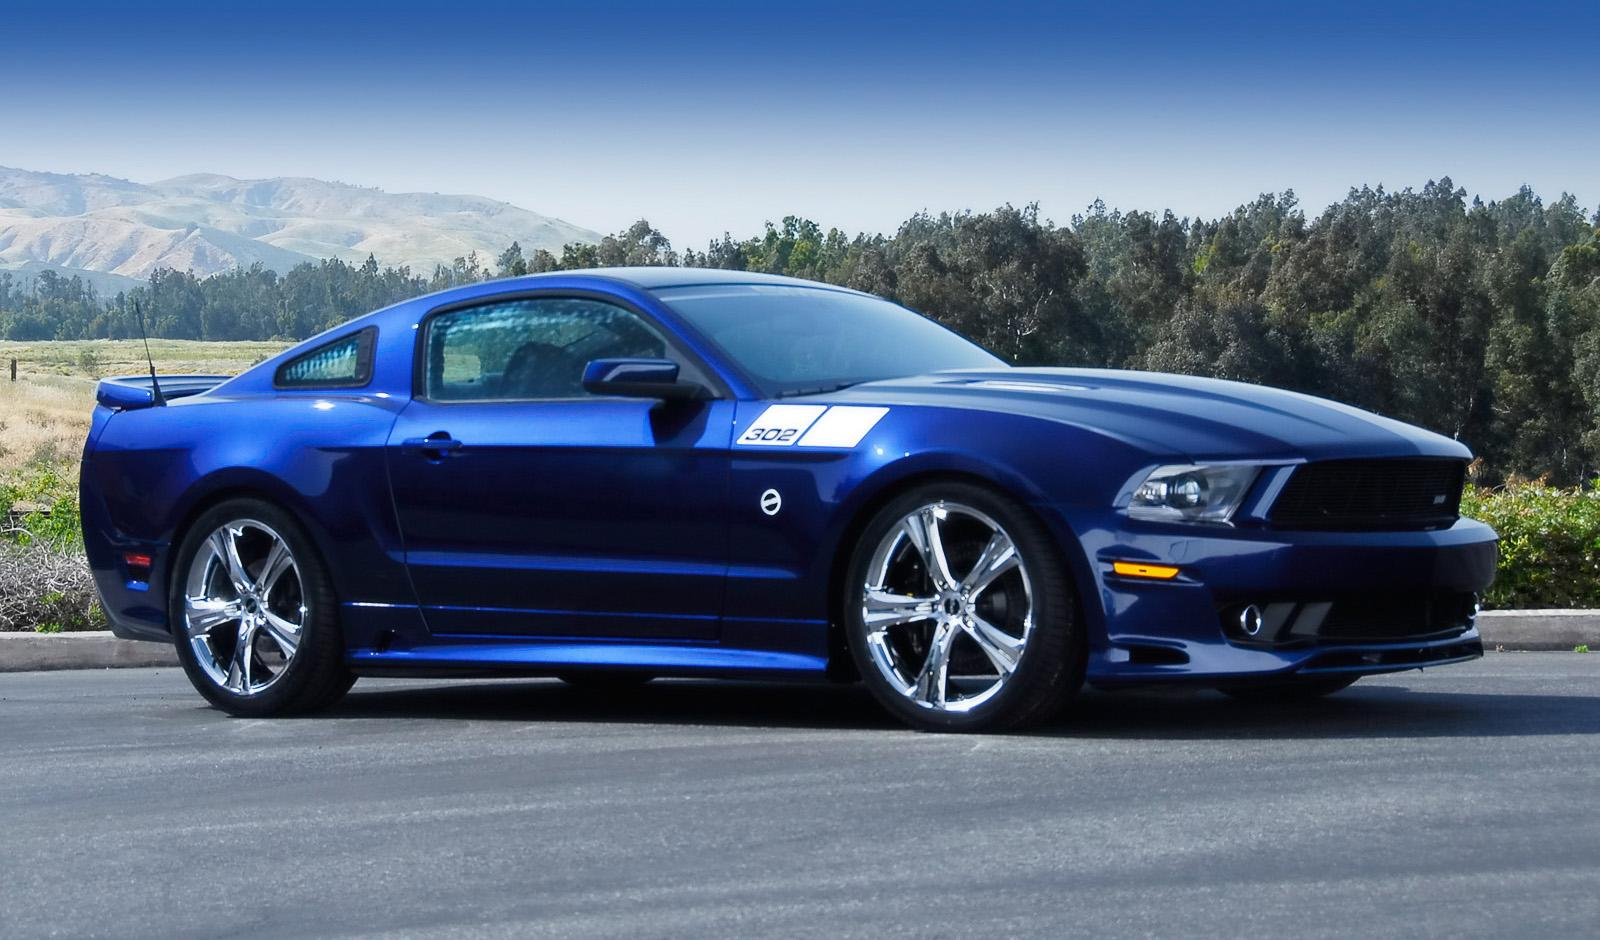 2011 Sms Mustang News And Information Conceptcarzcom